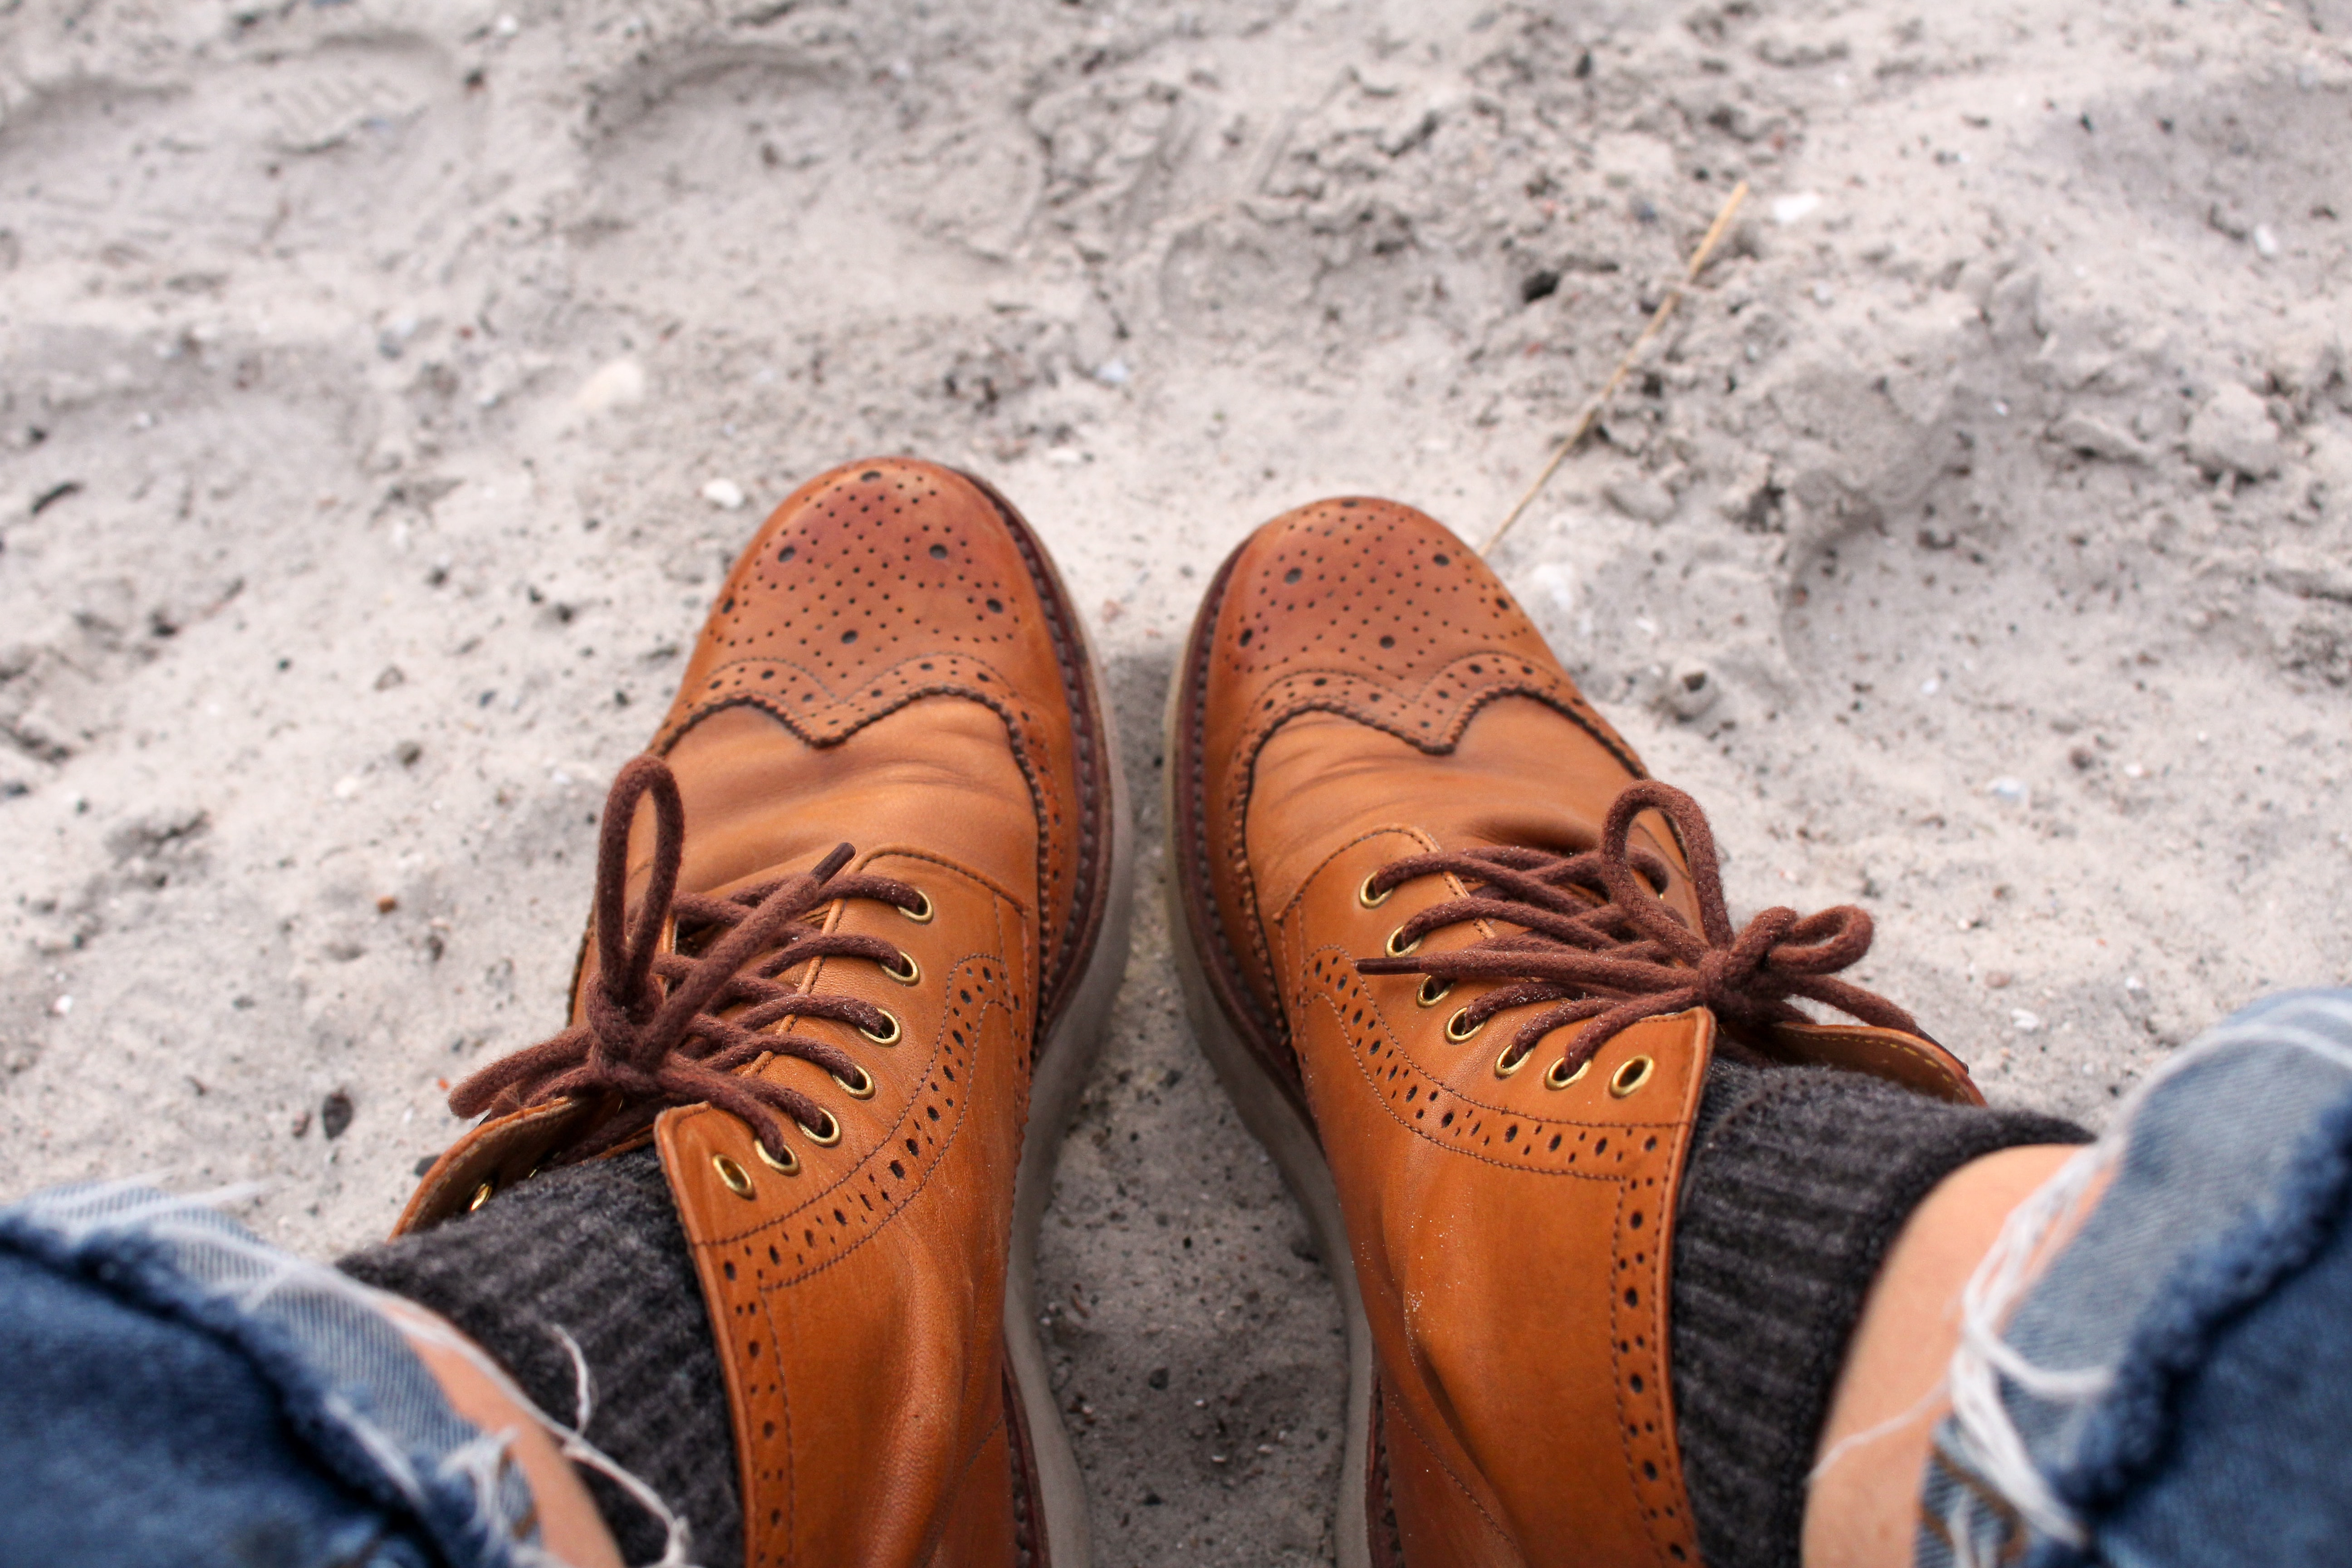 person wearing brown leather loafers